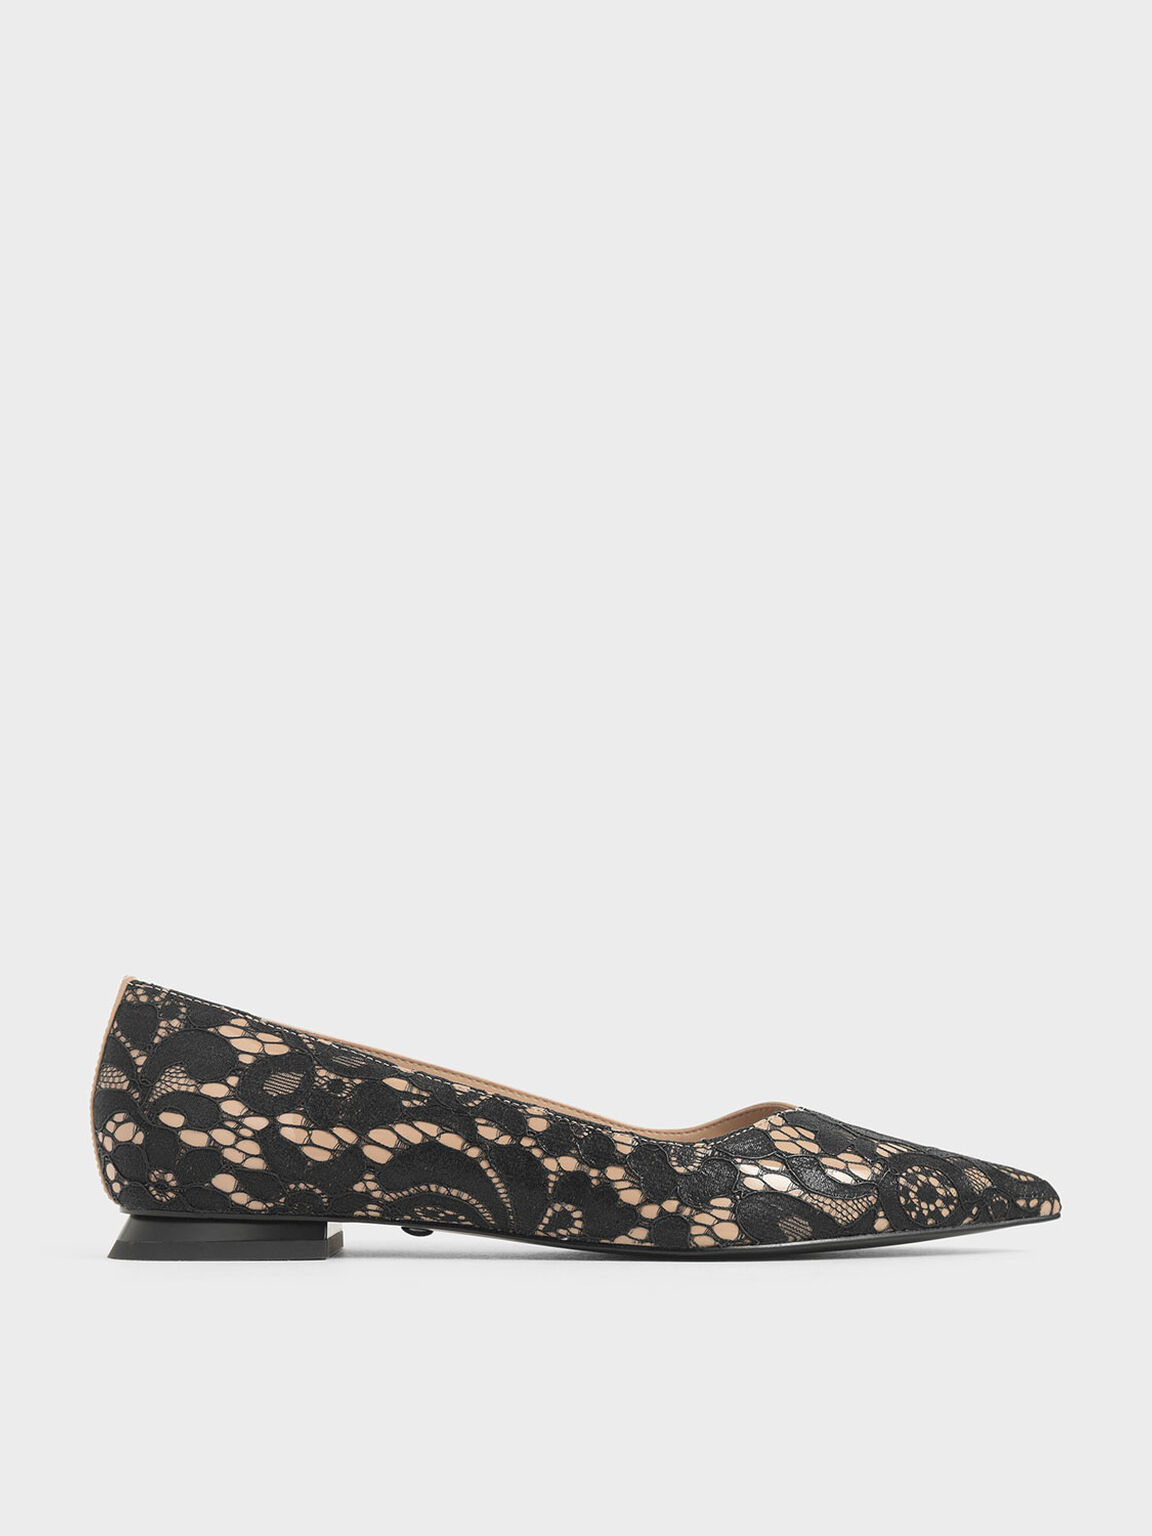 Patent Leather Lace Ballerina Flats, Black Textured, hi-res